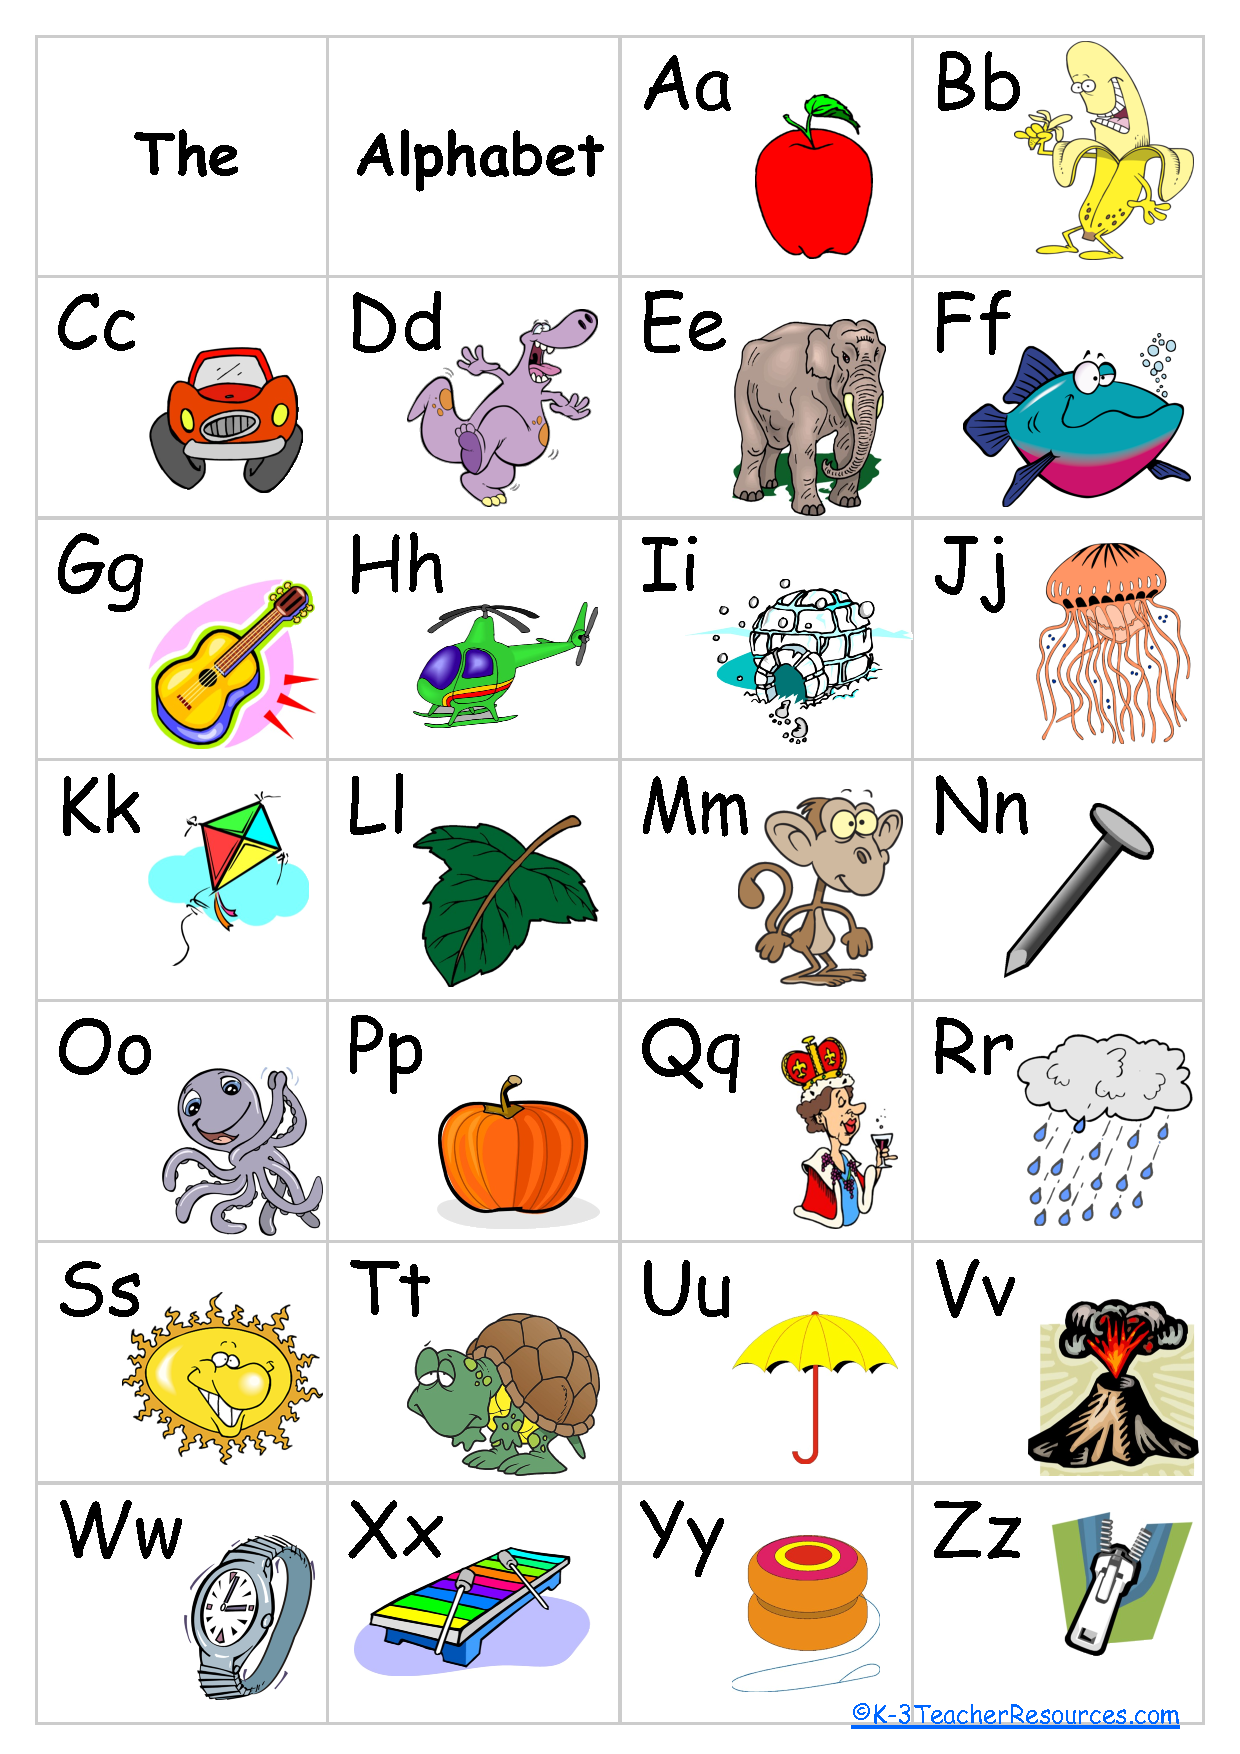 Free Printable Alphabet Chart Schoolroom ideas